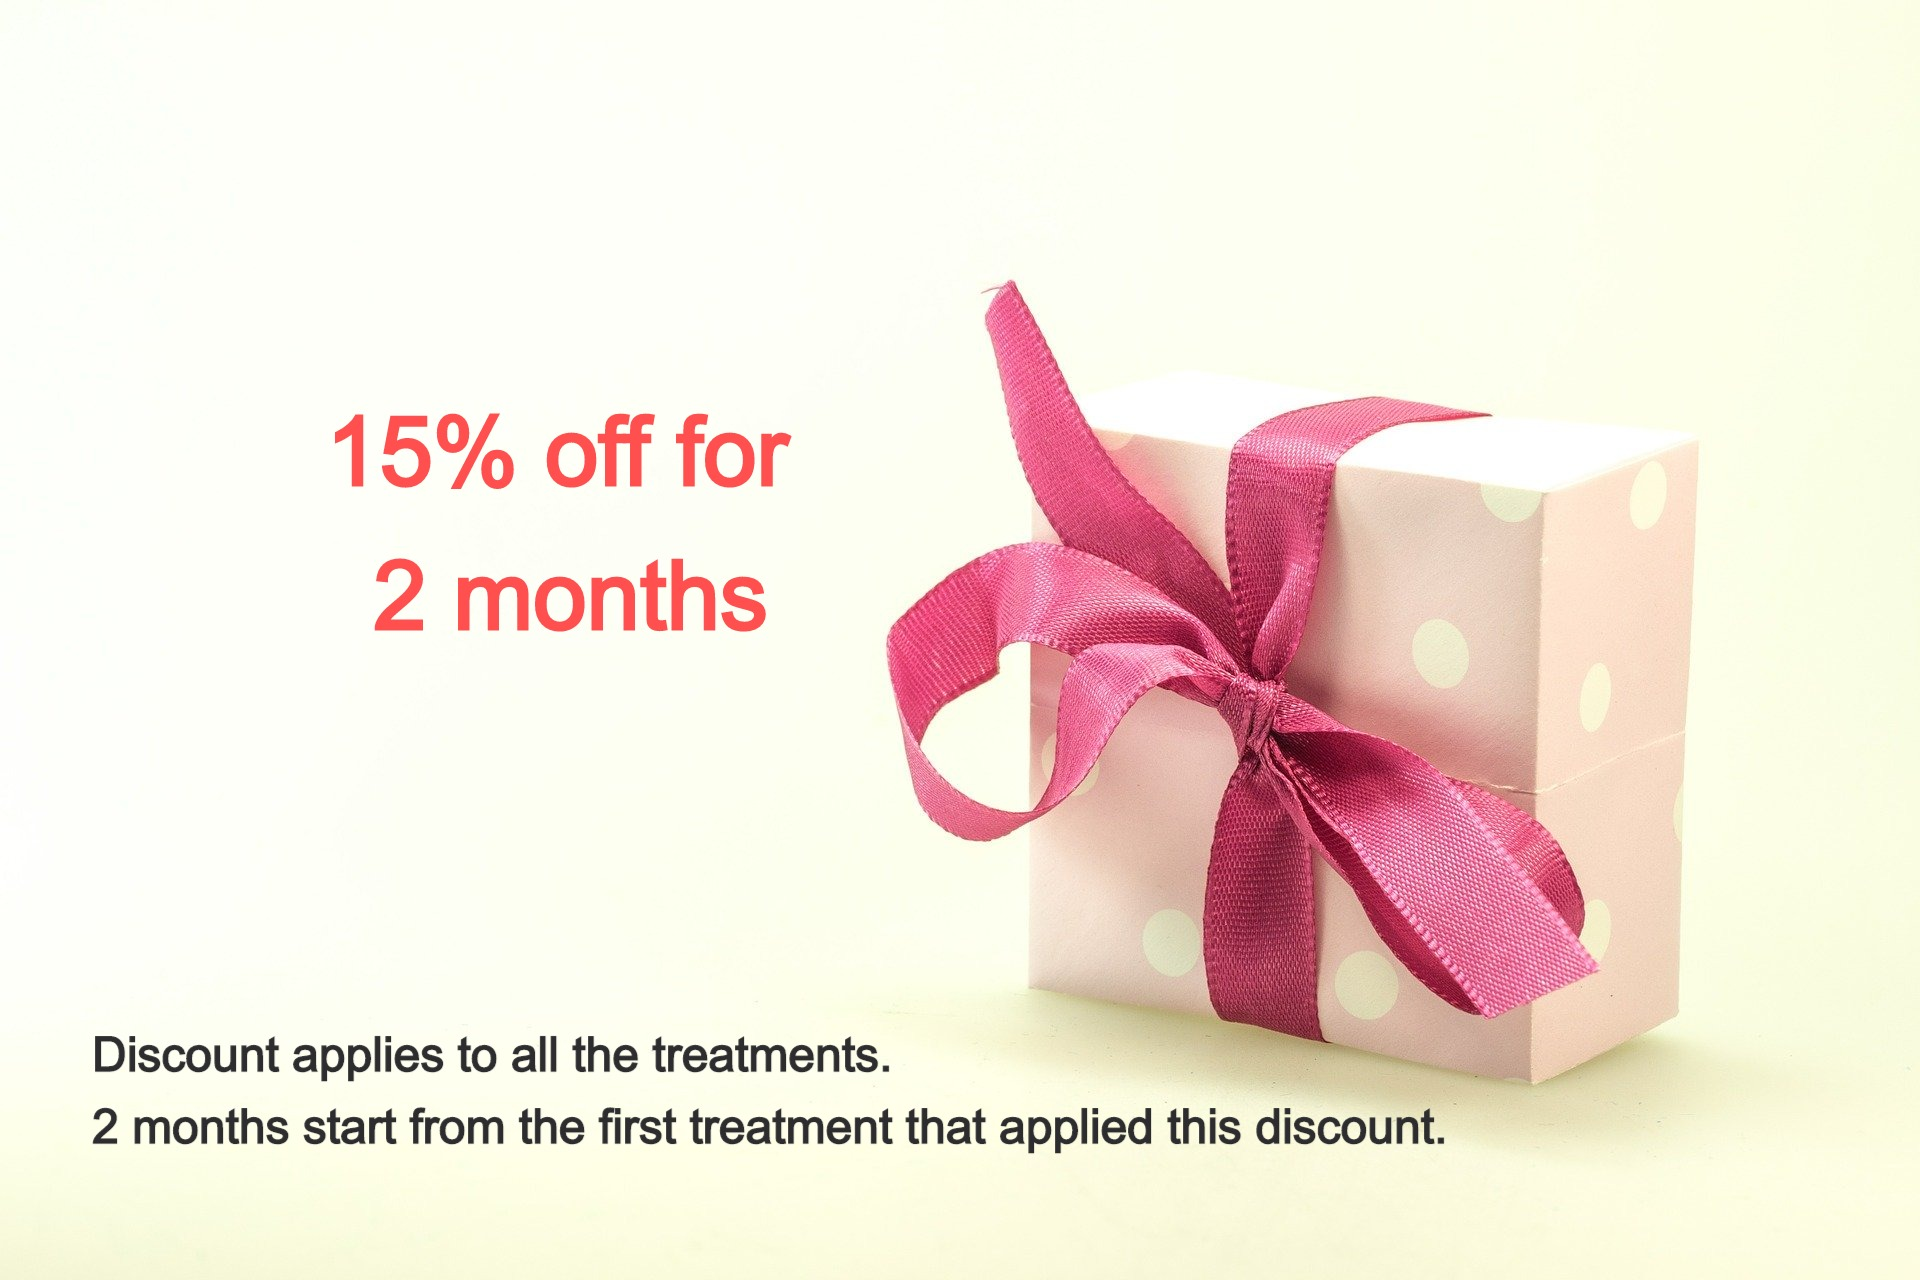 15% off for 2 month